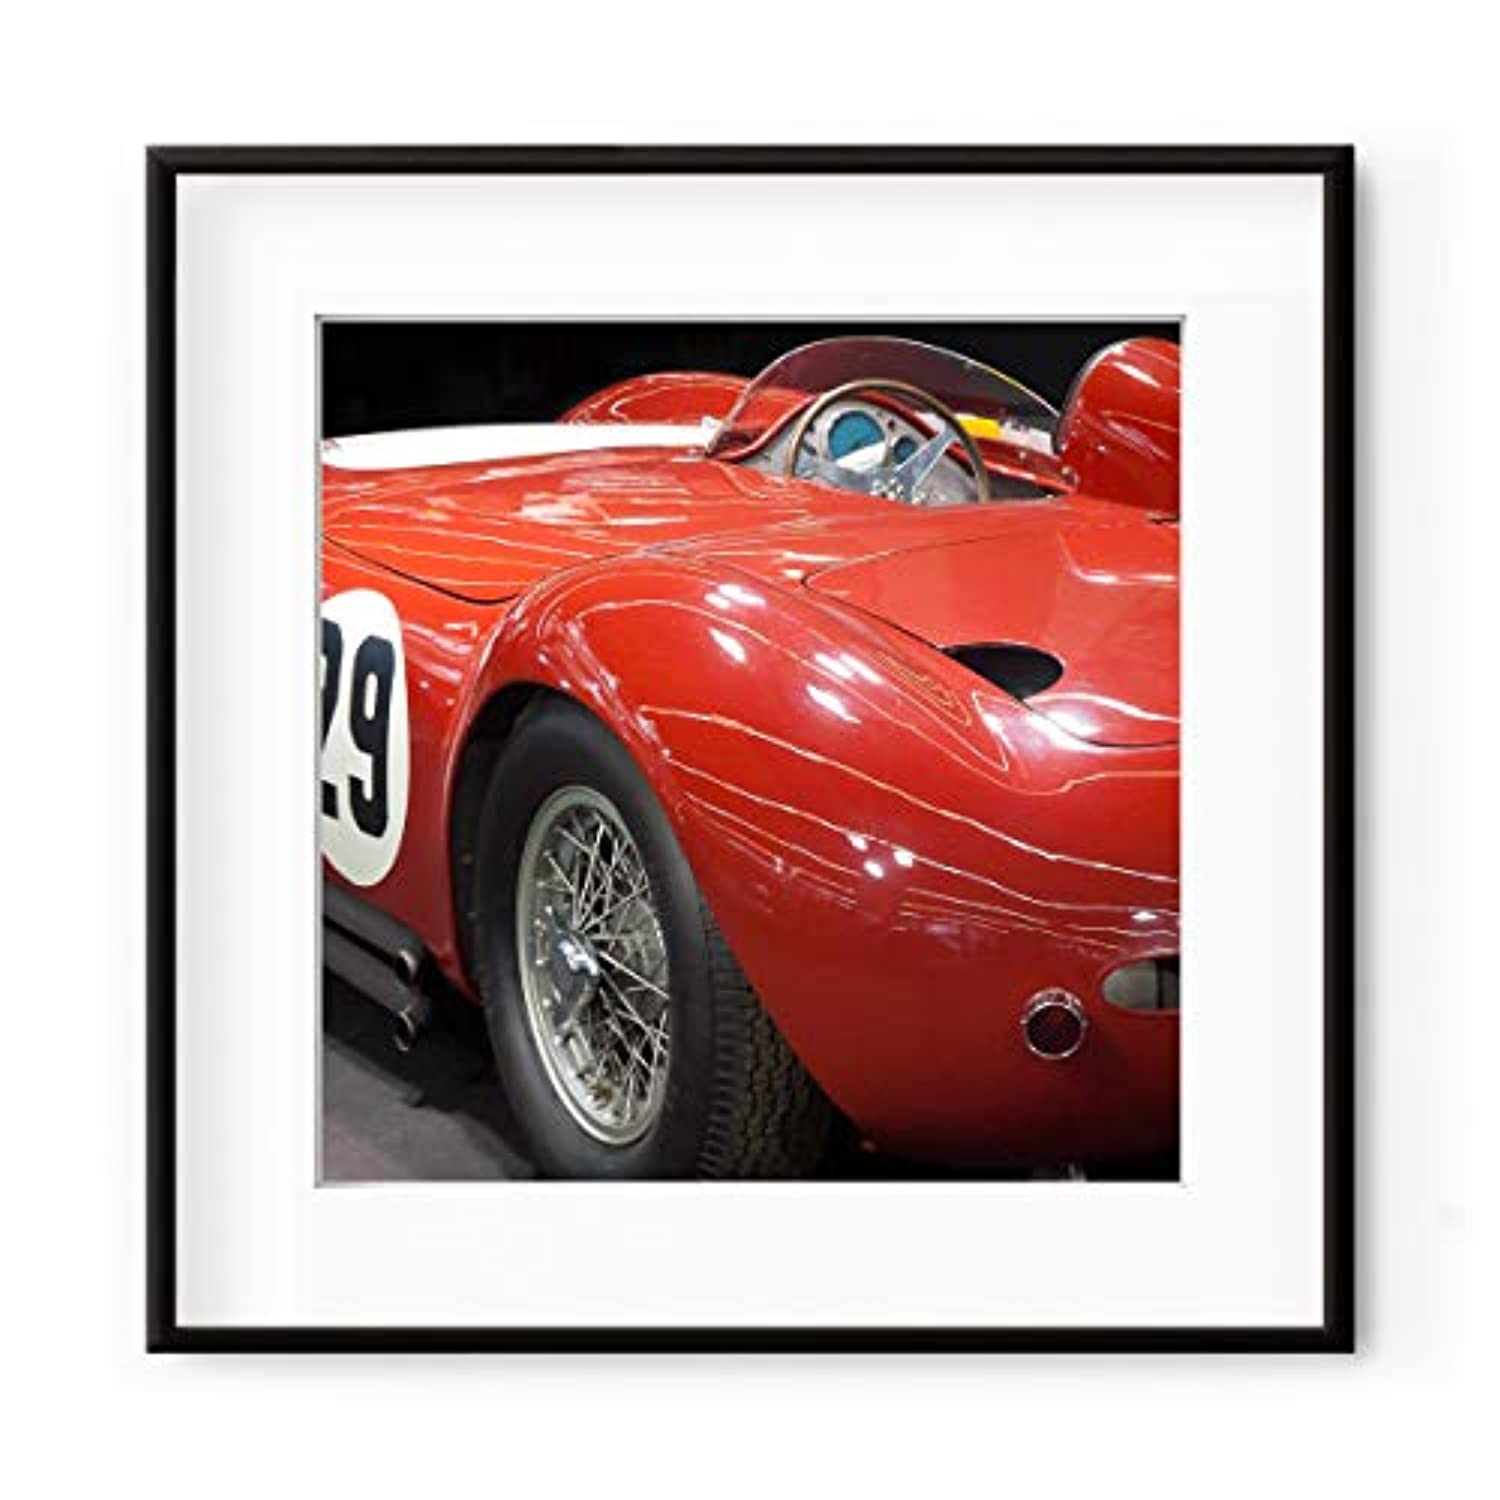 Red Sports Car, White Lacquered Wood Frame, with Mount, Multicolored, 40x40